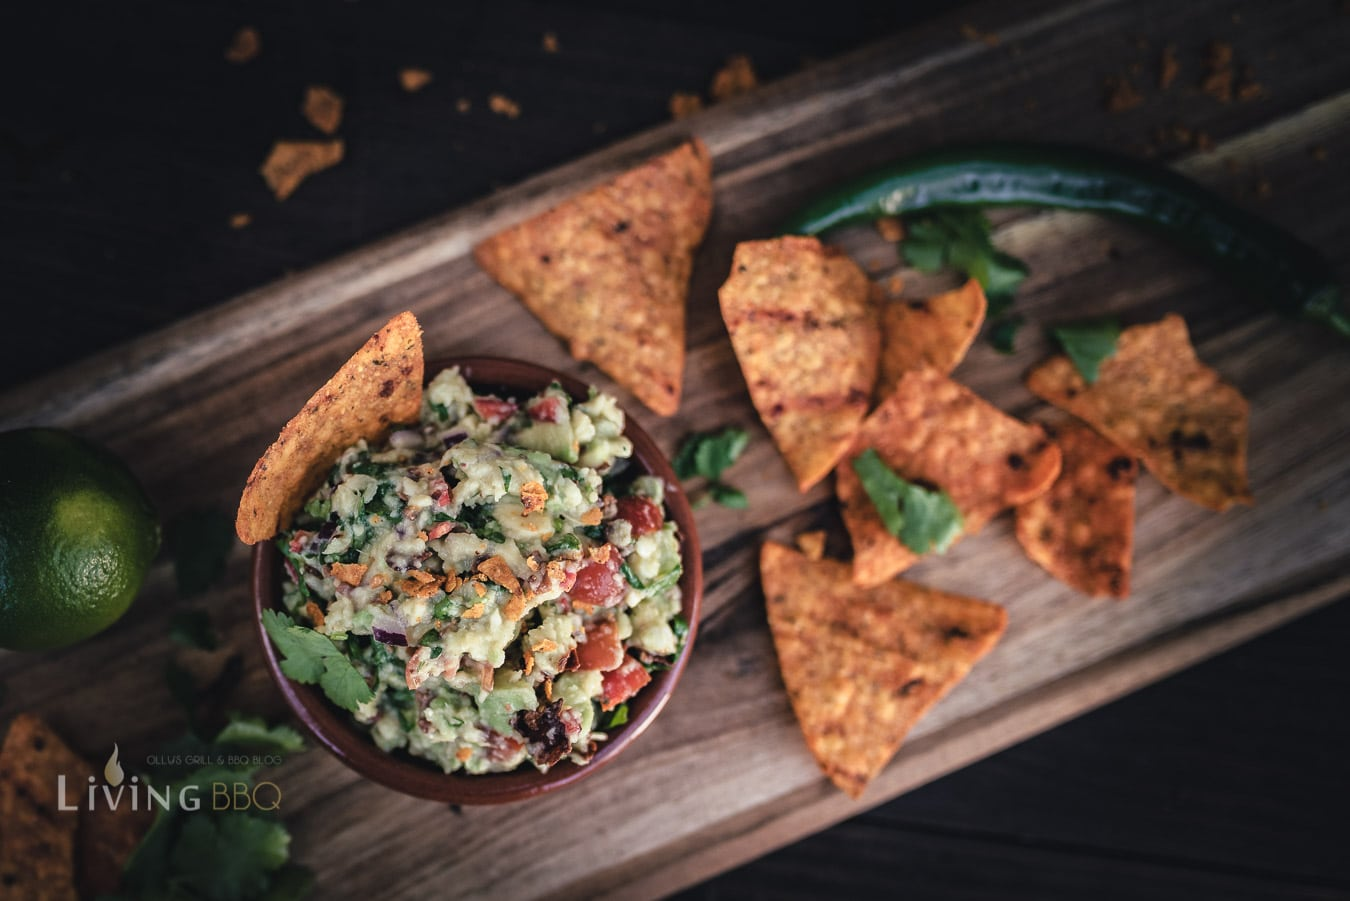 selbstgemachte Guacamole